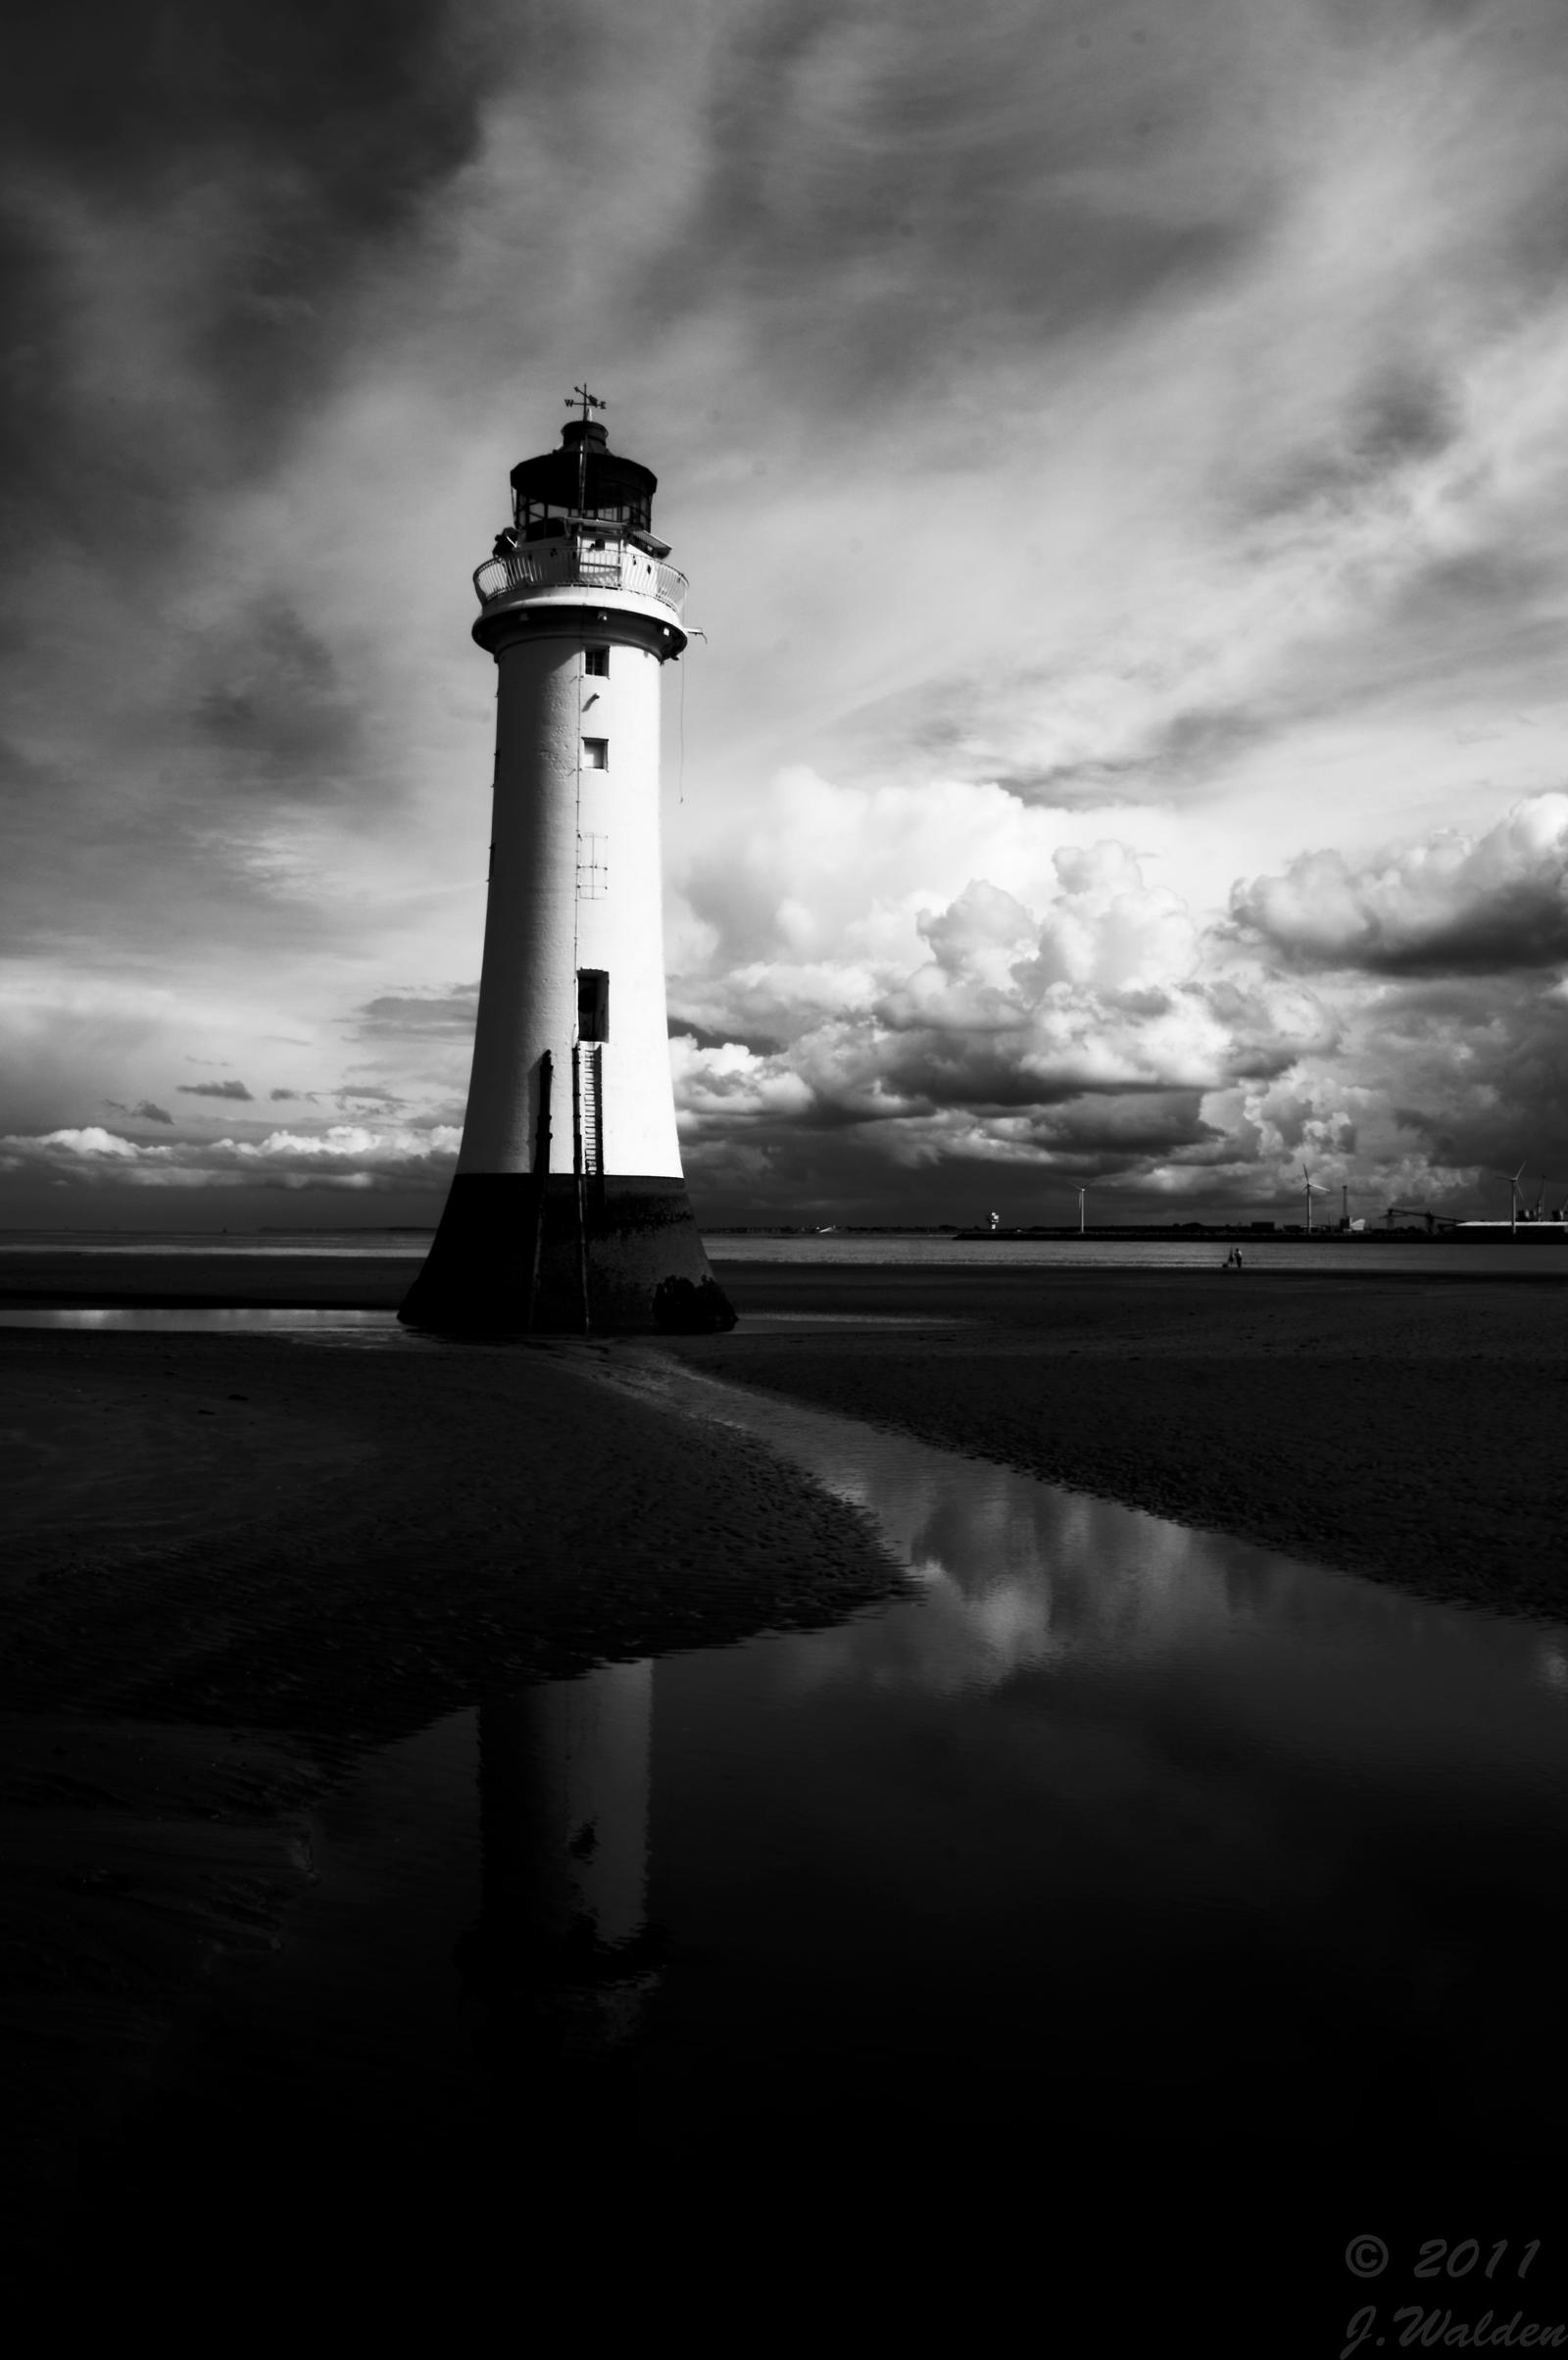 in addition lighthouse wallpaper - photo #4